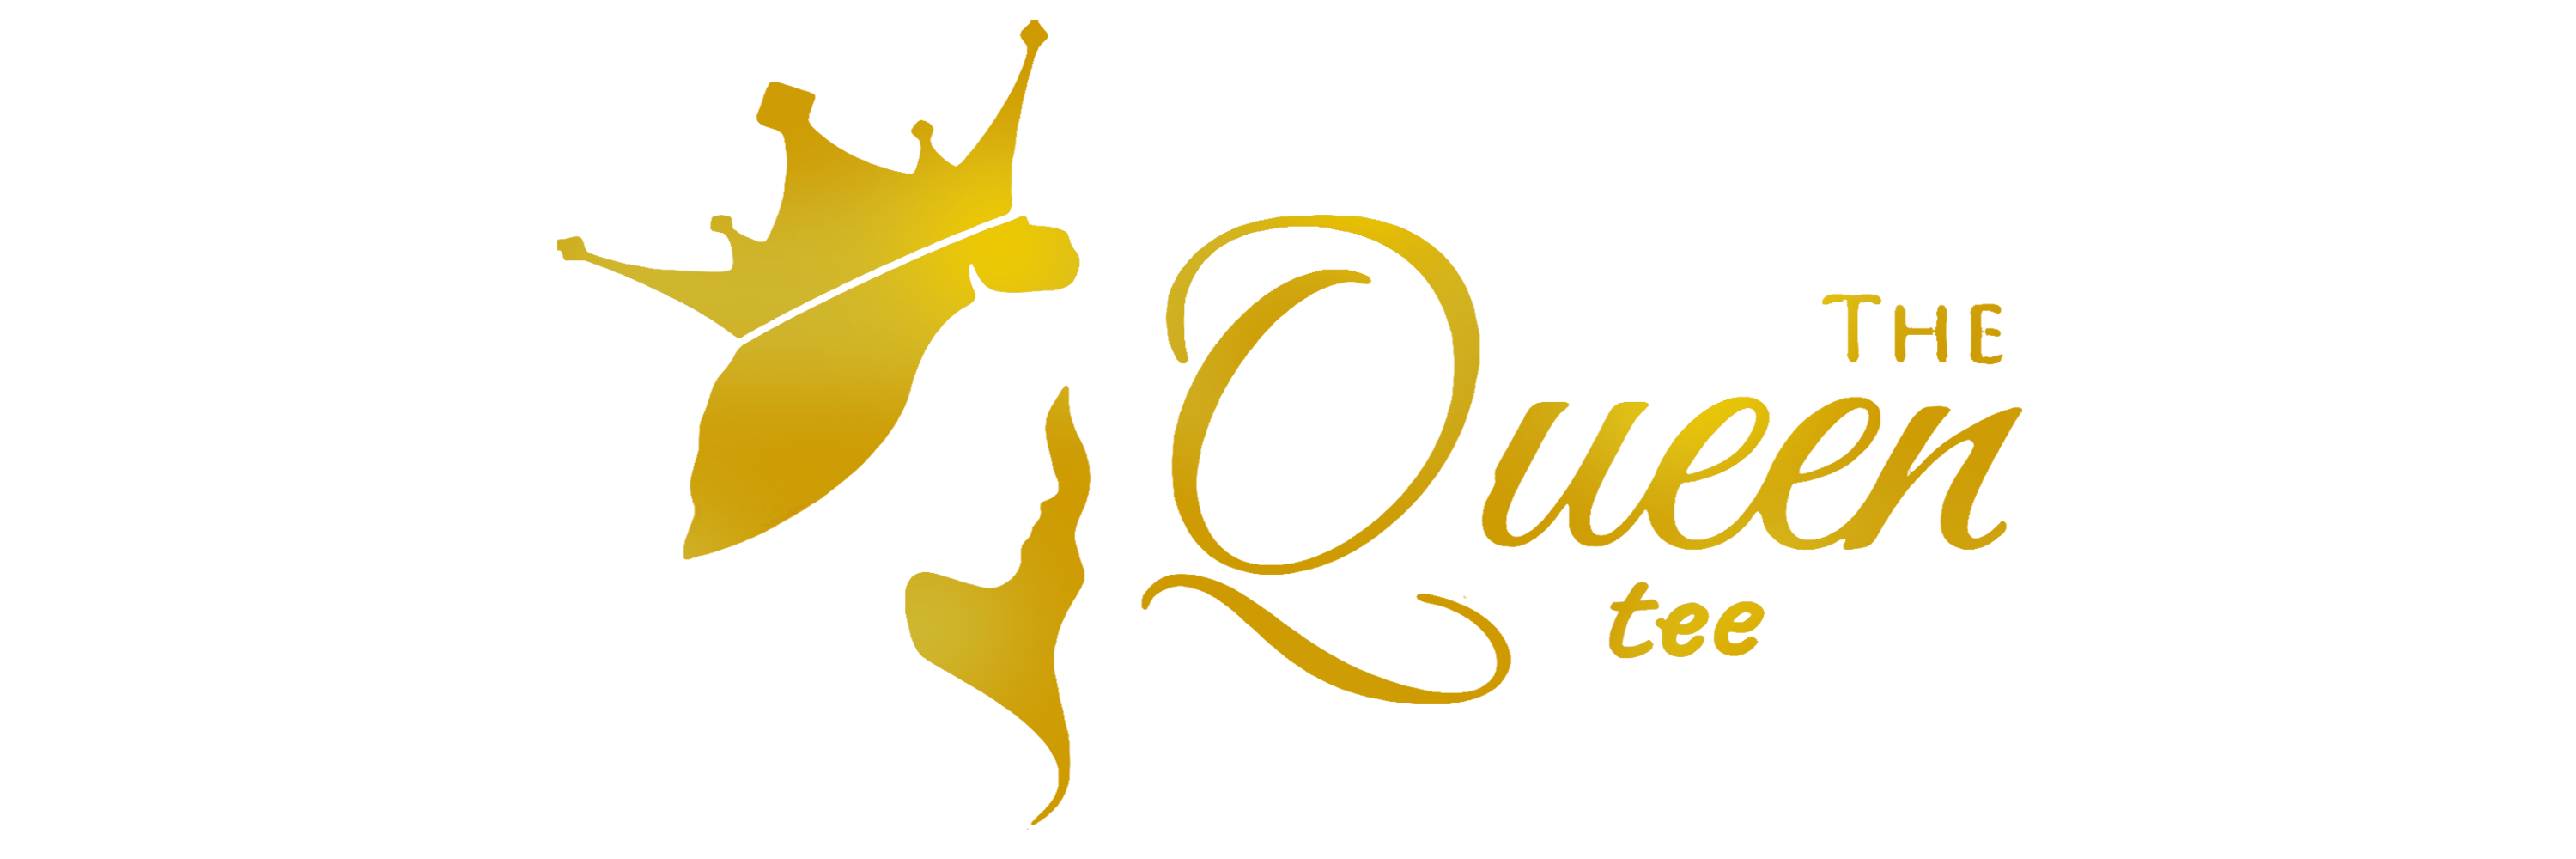 Thequeentee – The best loving fashion – Loving t-shirt, hoodie, tank update for man and woman.